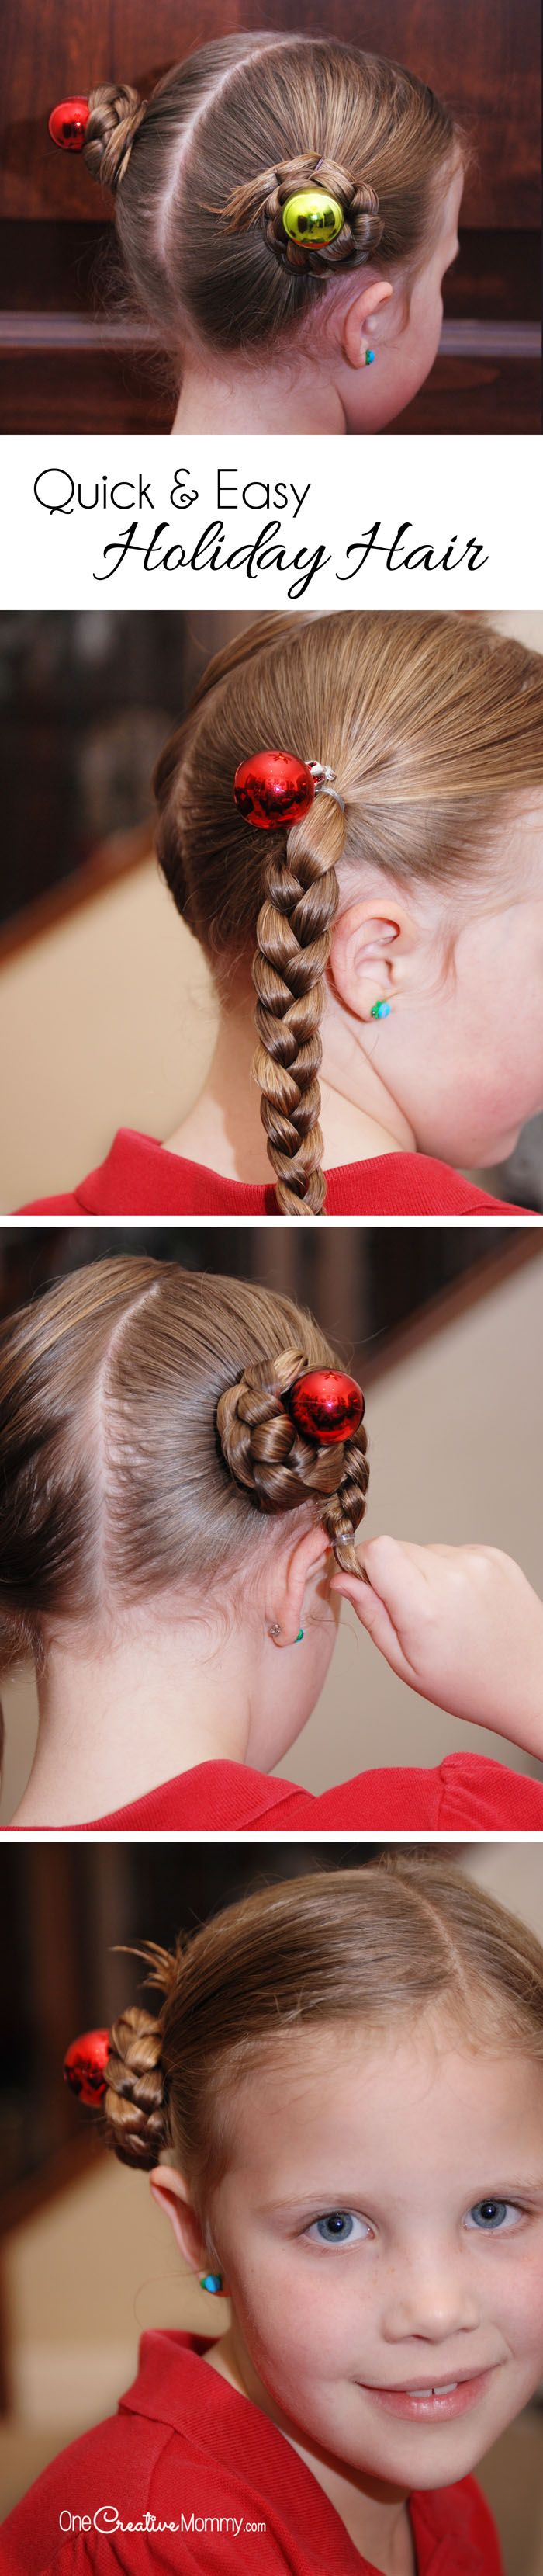 Simple Holiday Hair for Girls #crazyhairdayatschoolforgirlseasy